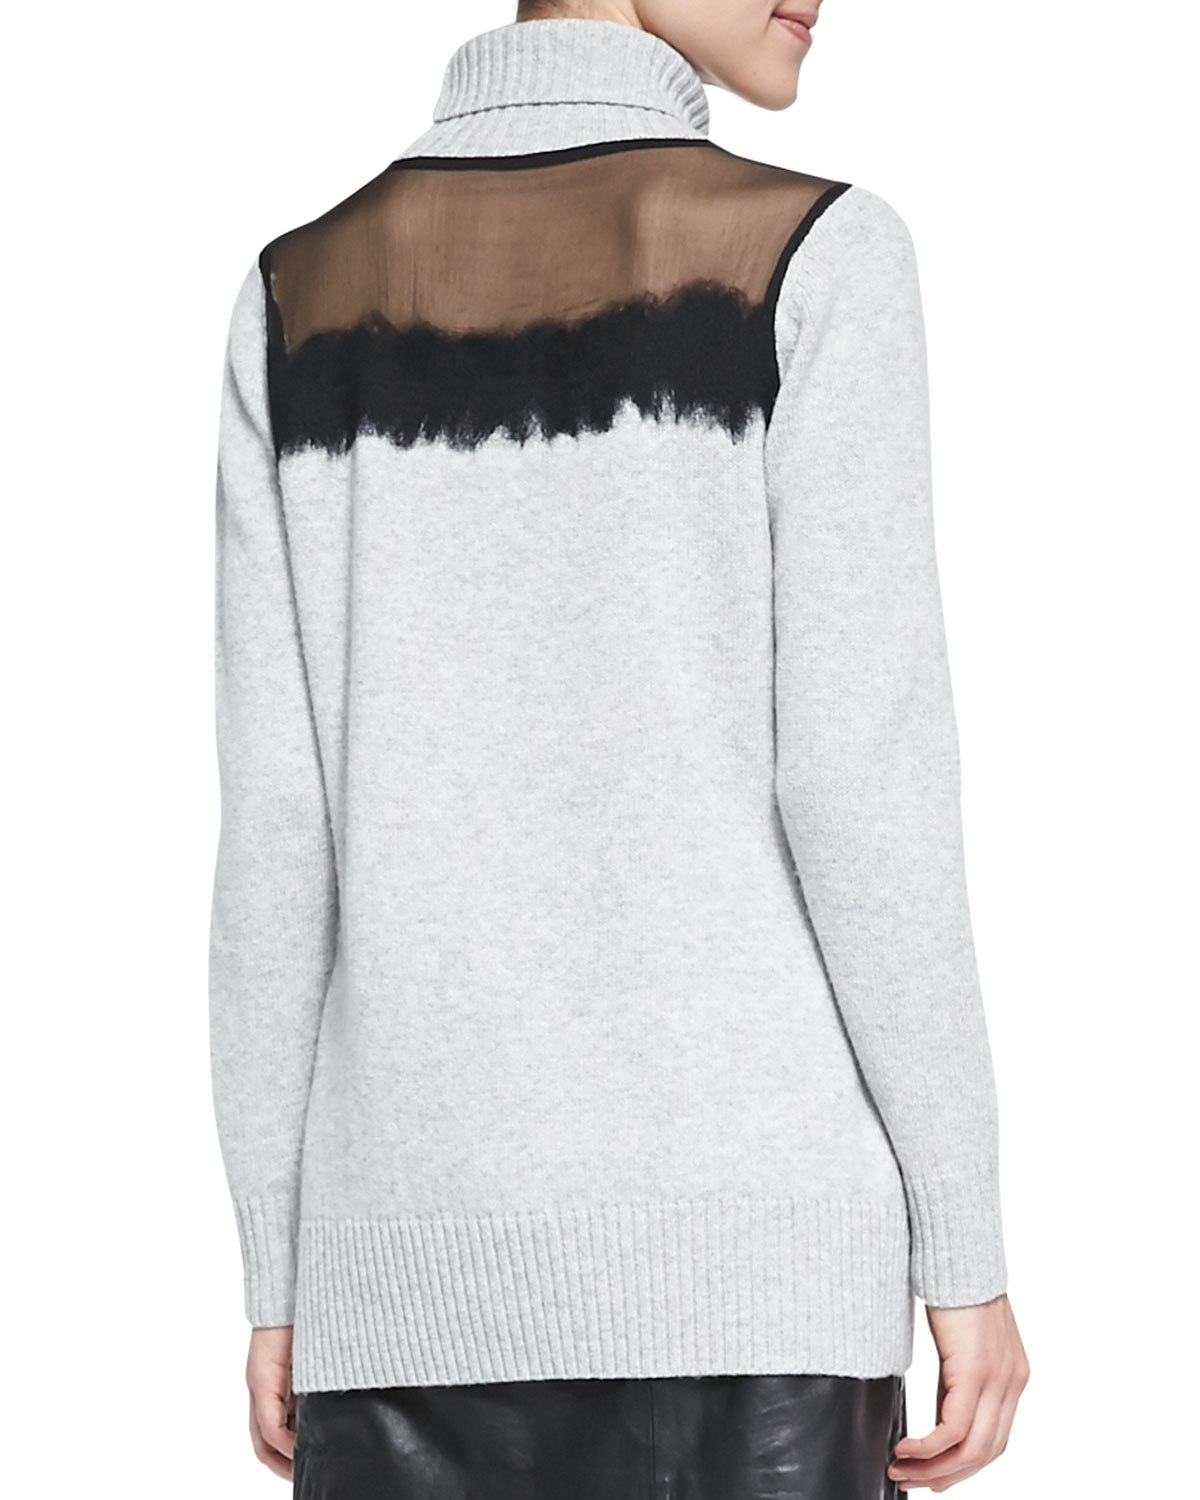 4d09dcae7e Lyst - Andrew Marc Sheer-Top Knit Turtleneck Sweater in Gray